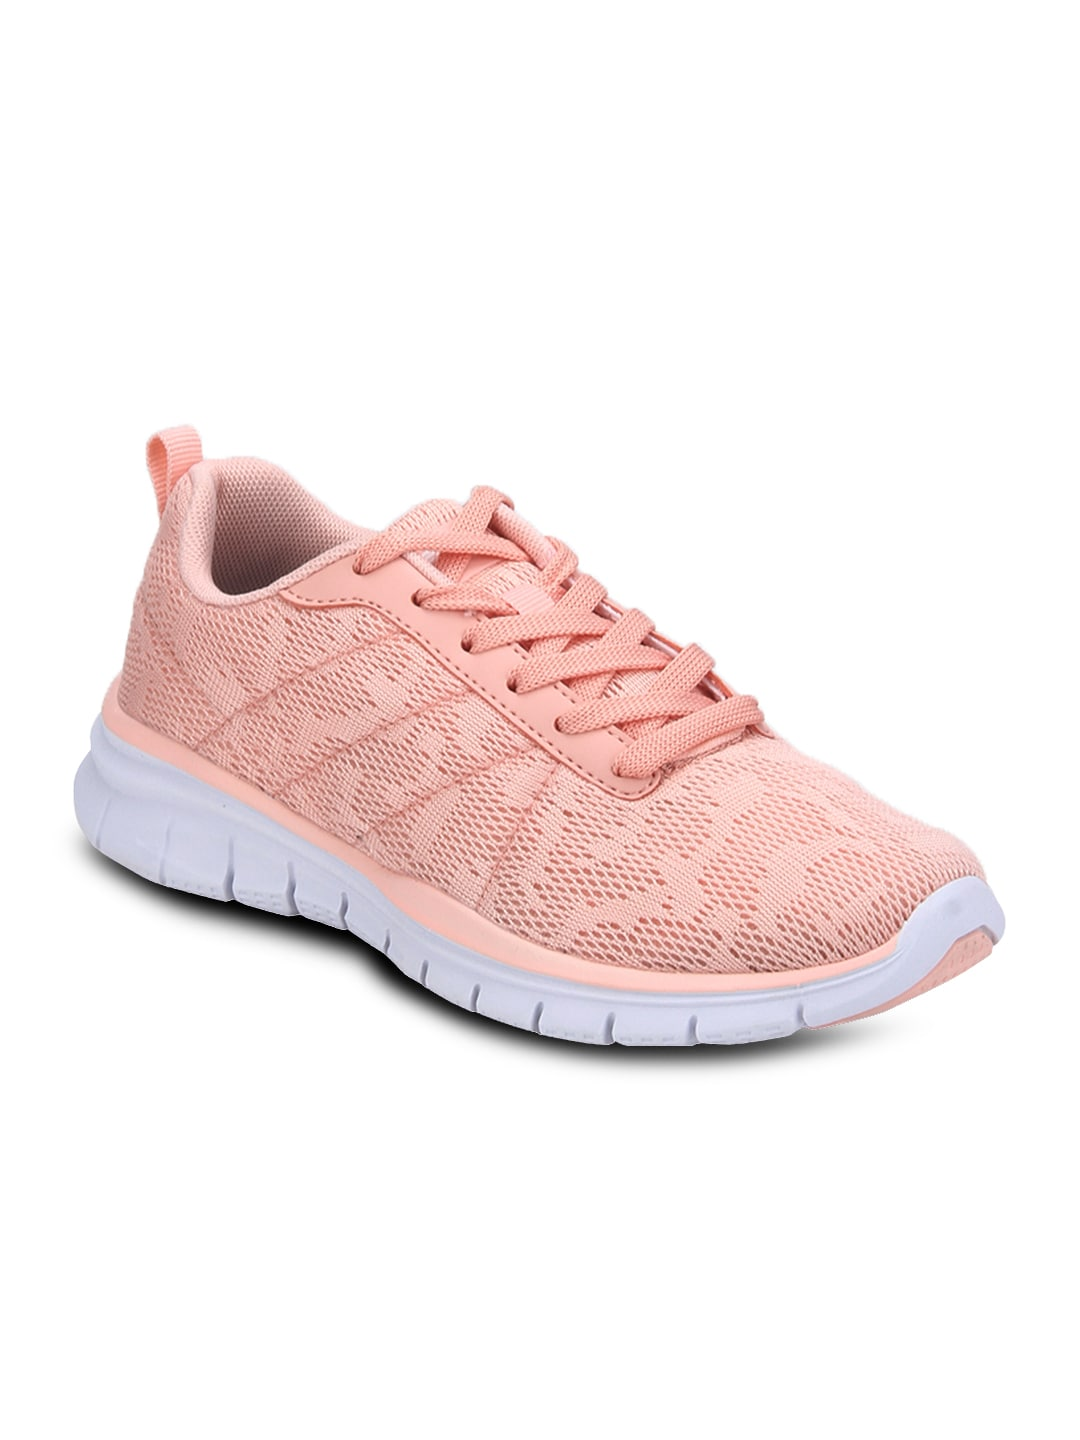 Sports Shoes for Women - Buy Women Sports Shoes Online  4c6758bfe